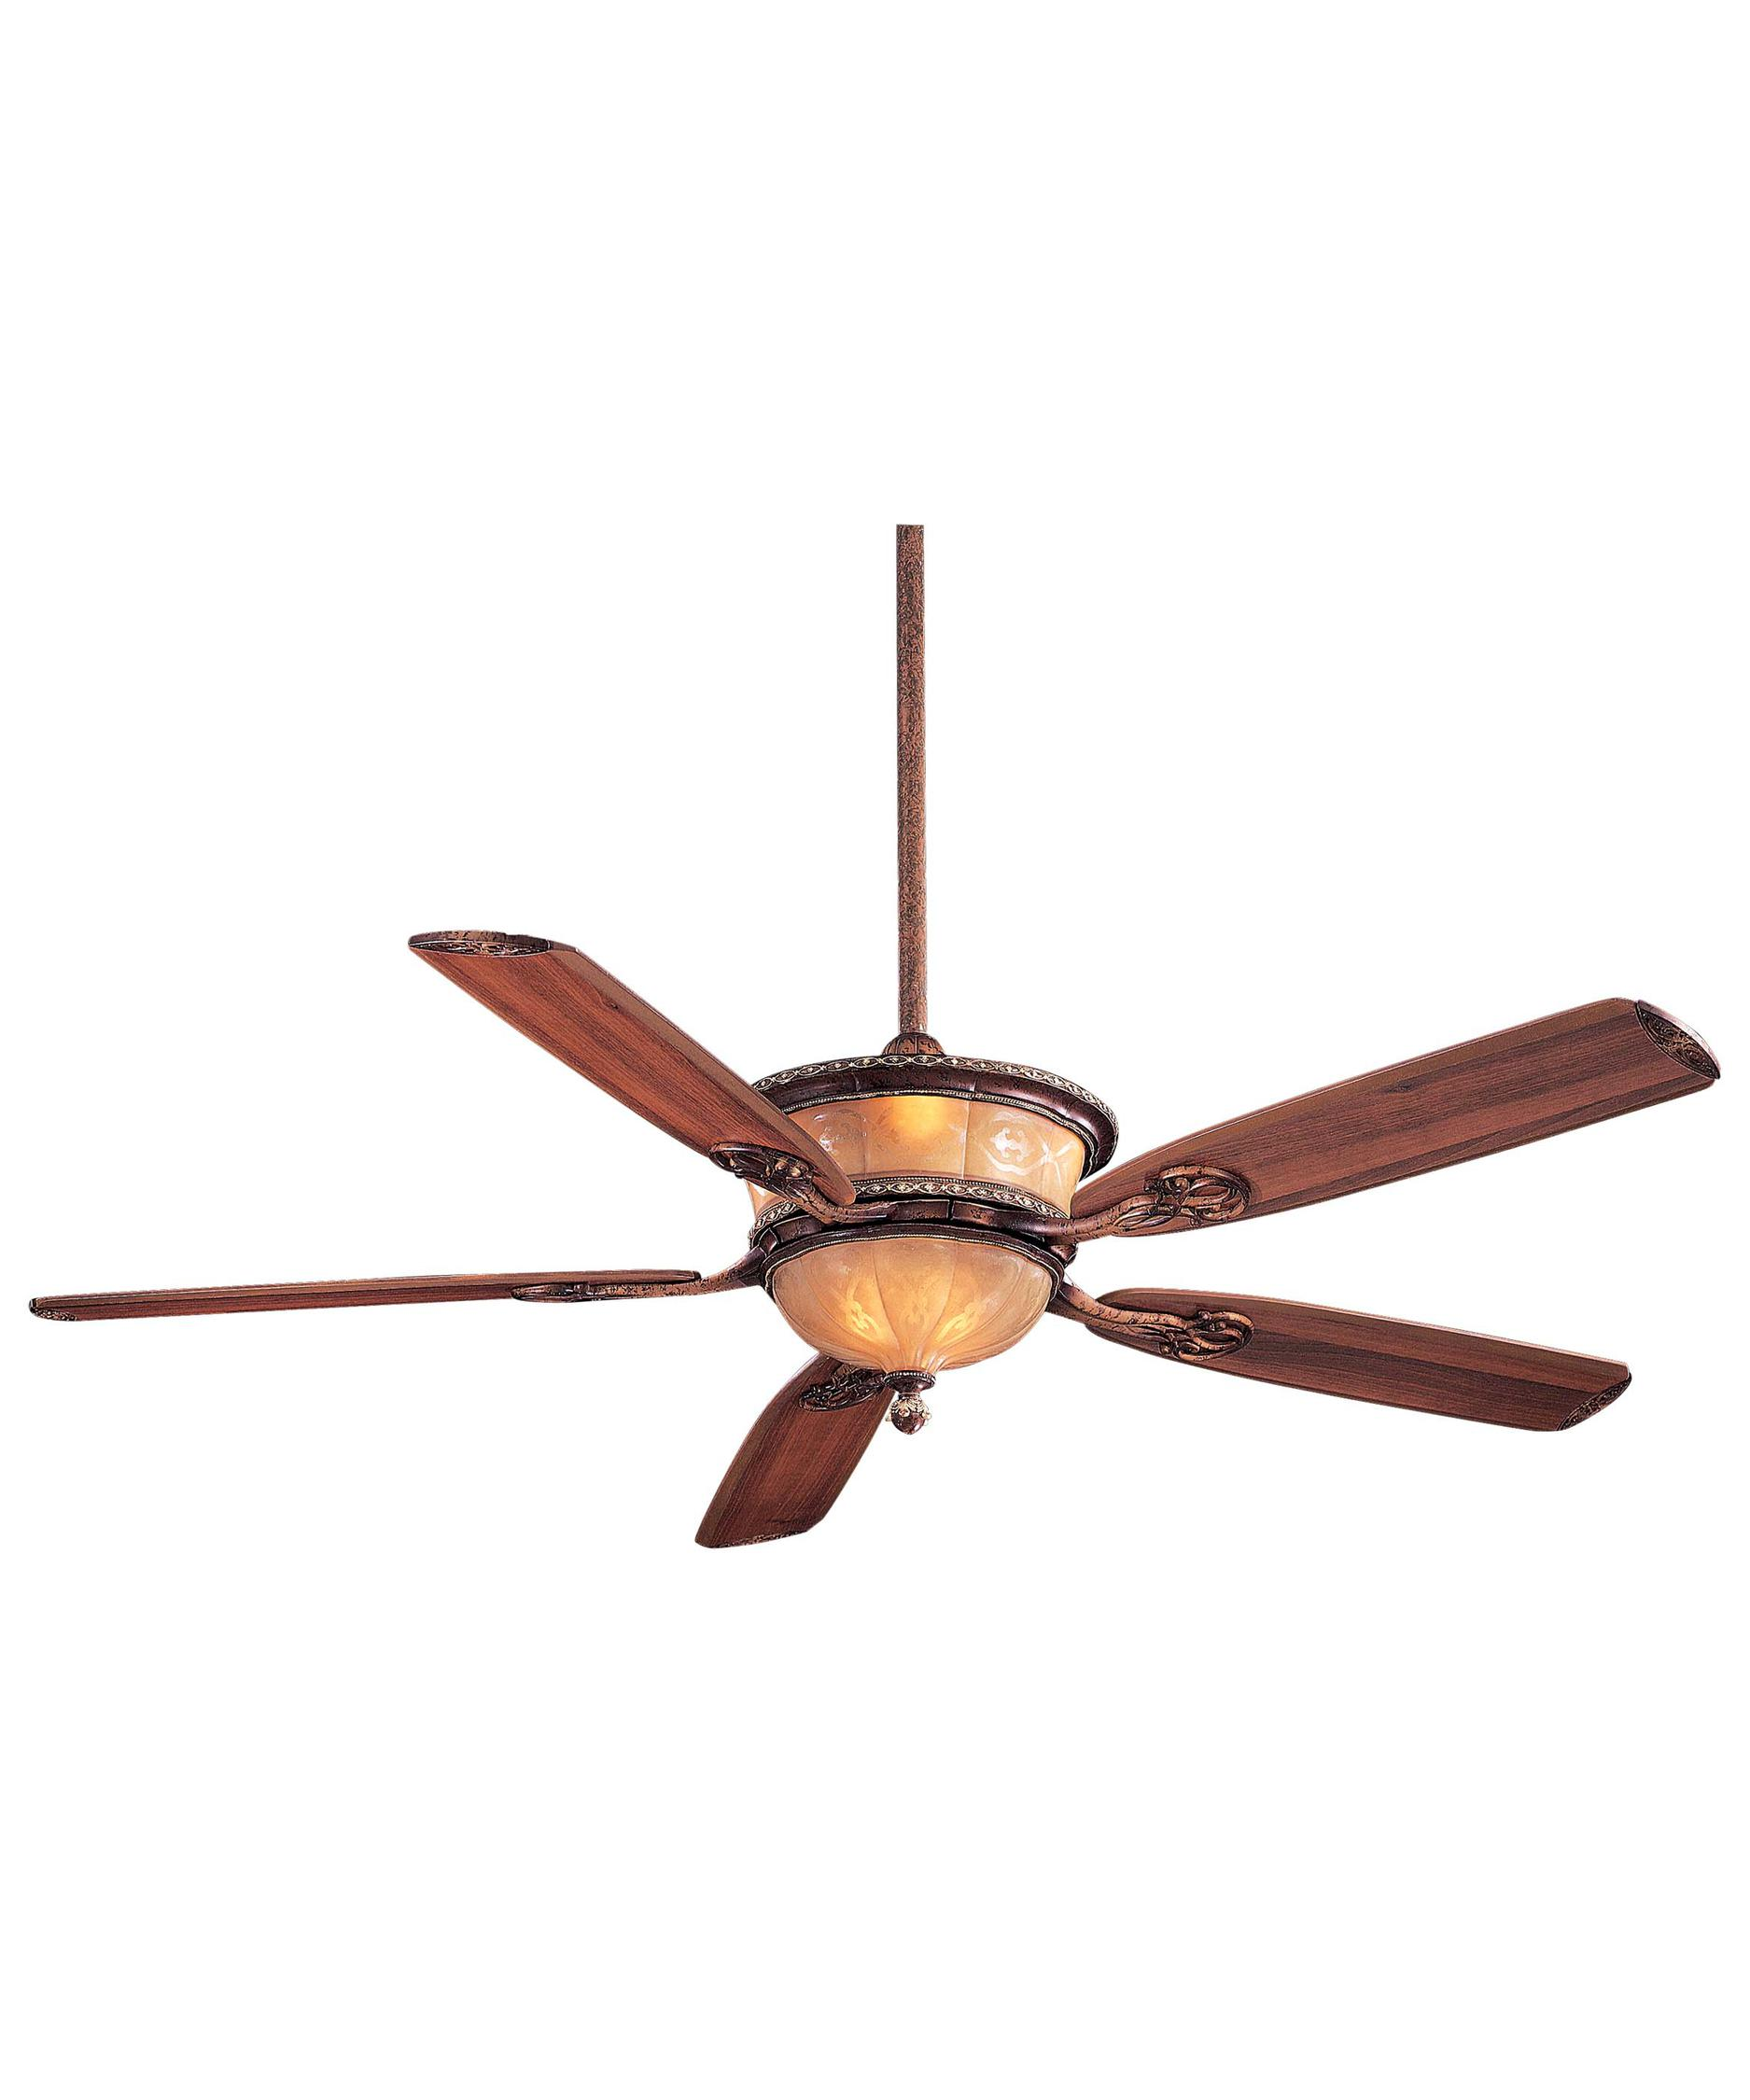 Minka Aire Santa Lucia 64 Inch 5 Blade Ceiling Fan | Capitol ...:Shown in Cattera Bronze finish and Cognac Fluted Etched glass,Lighting